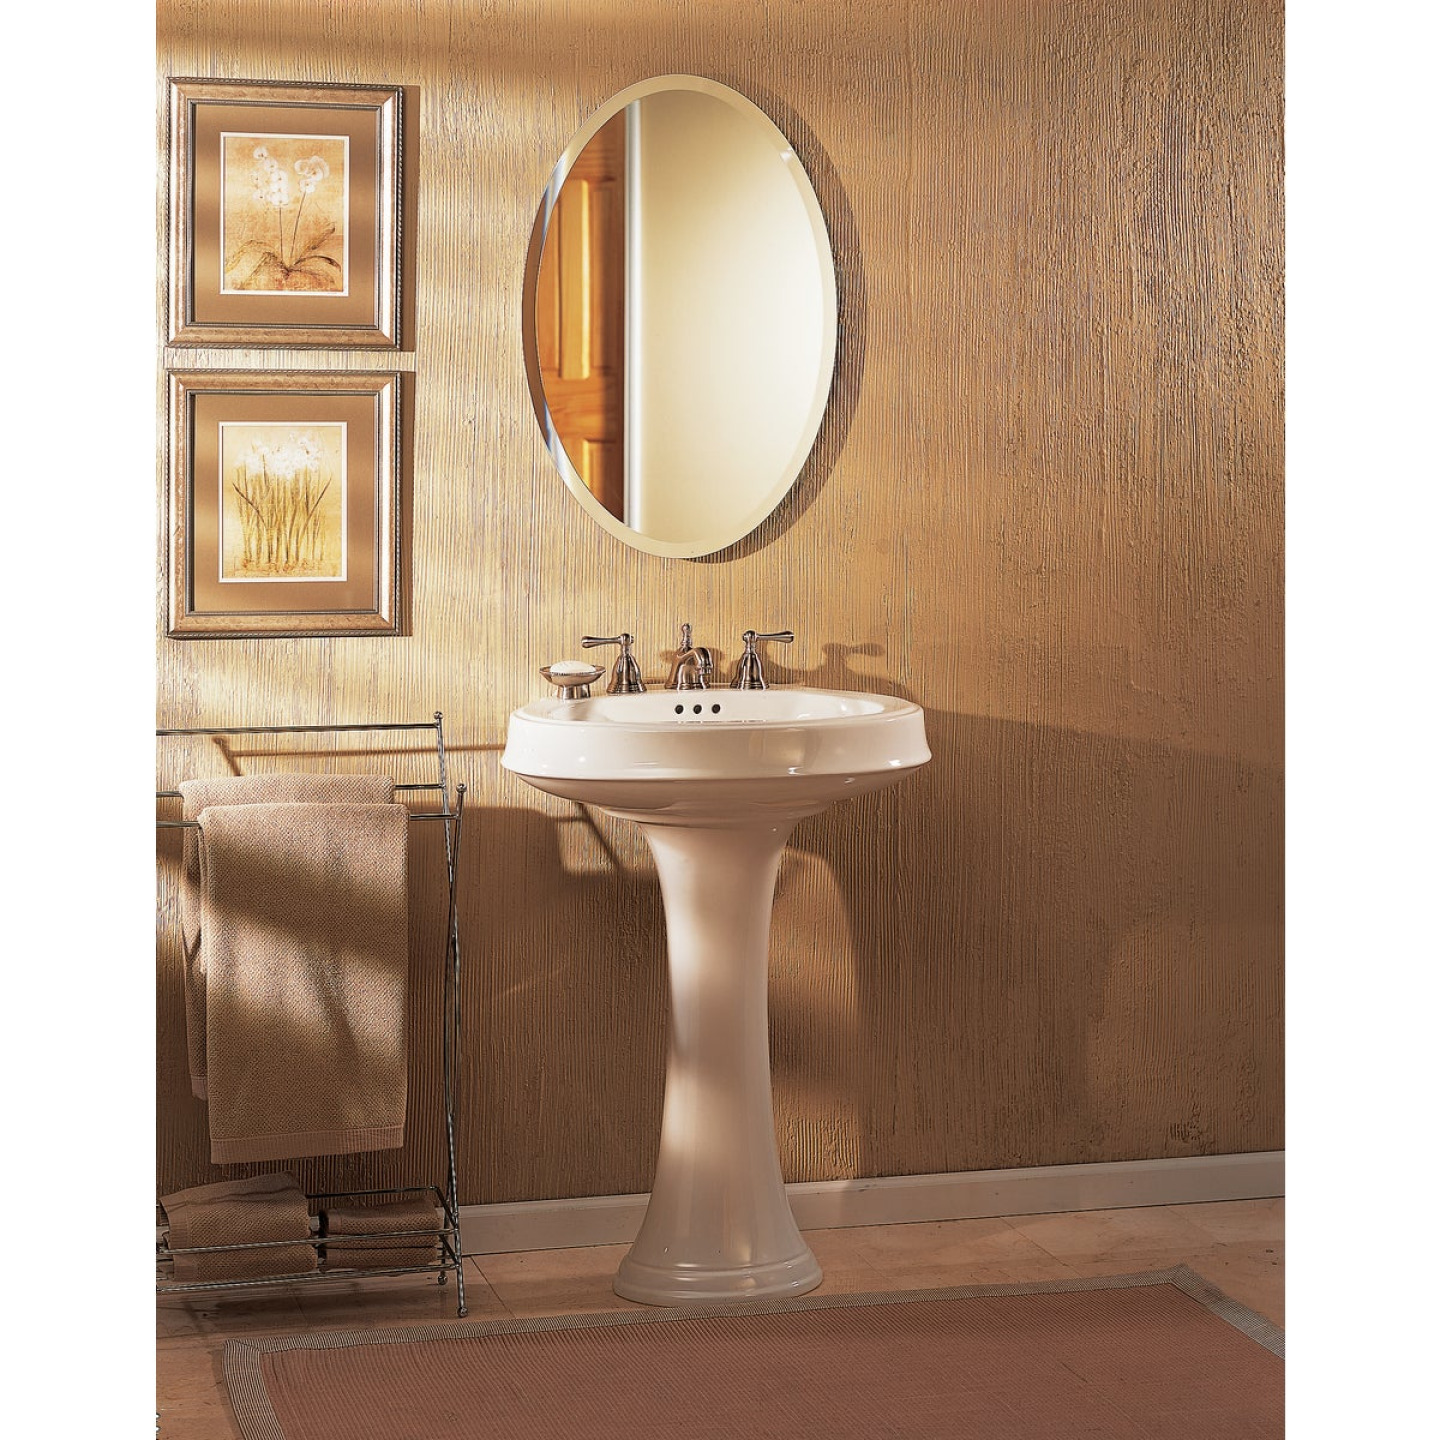 Zenith Frameless Beveled 21 In W X 31 In H X 4 In D Single Mirror Surface Mount Oval Medicine Cabinet Do It Best World S Largest Hardware Store